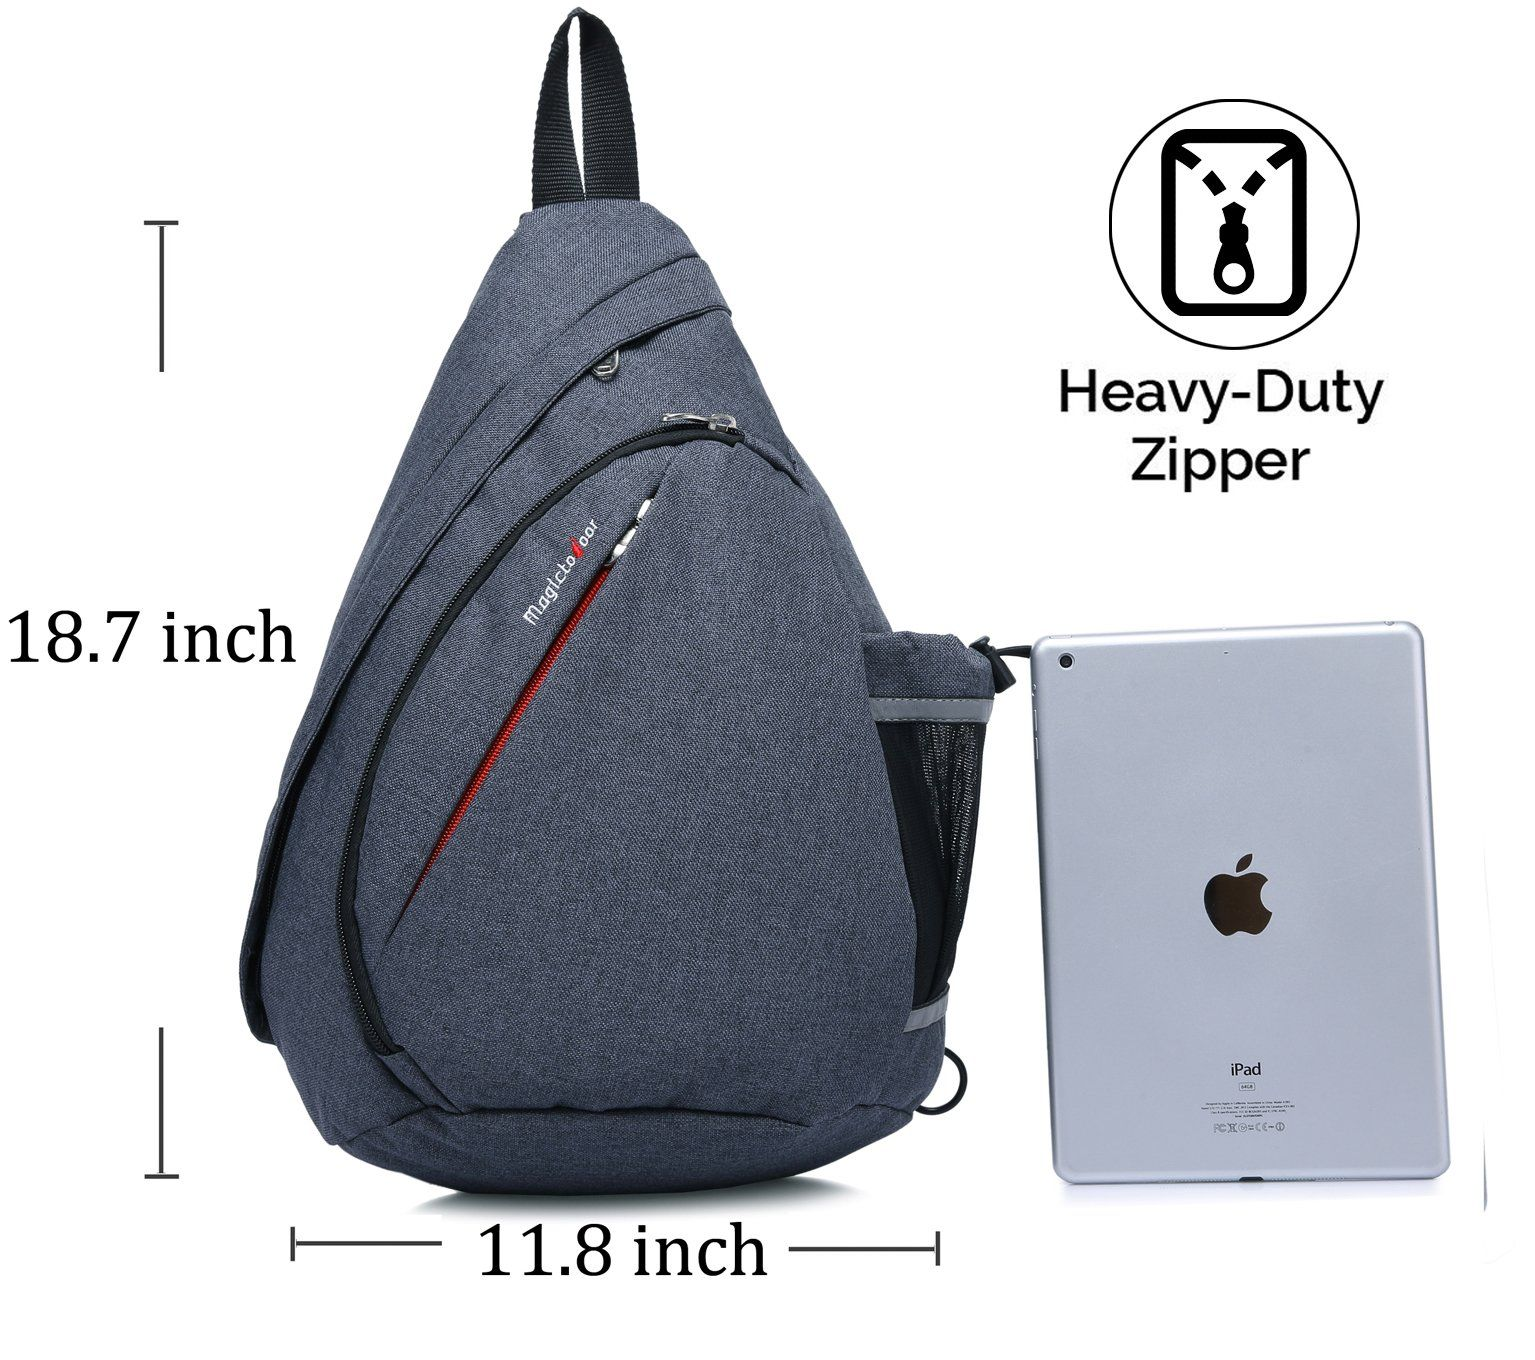 bcc0dd40d Magictodoor Sling Bag Travel Backpack Wear Over Shoulder or Crossbody Chest  Bag Blue >>> Want additional info? Click on the image.